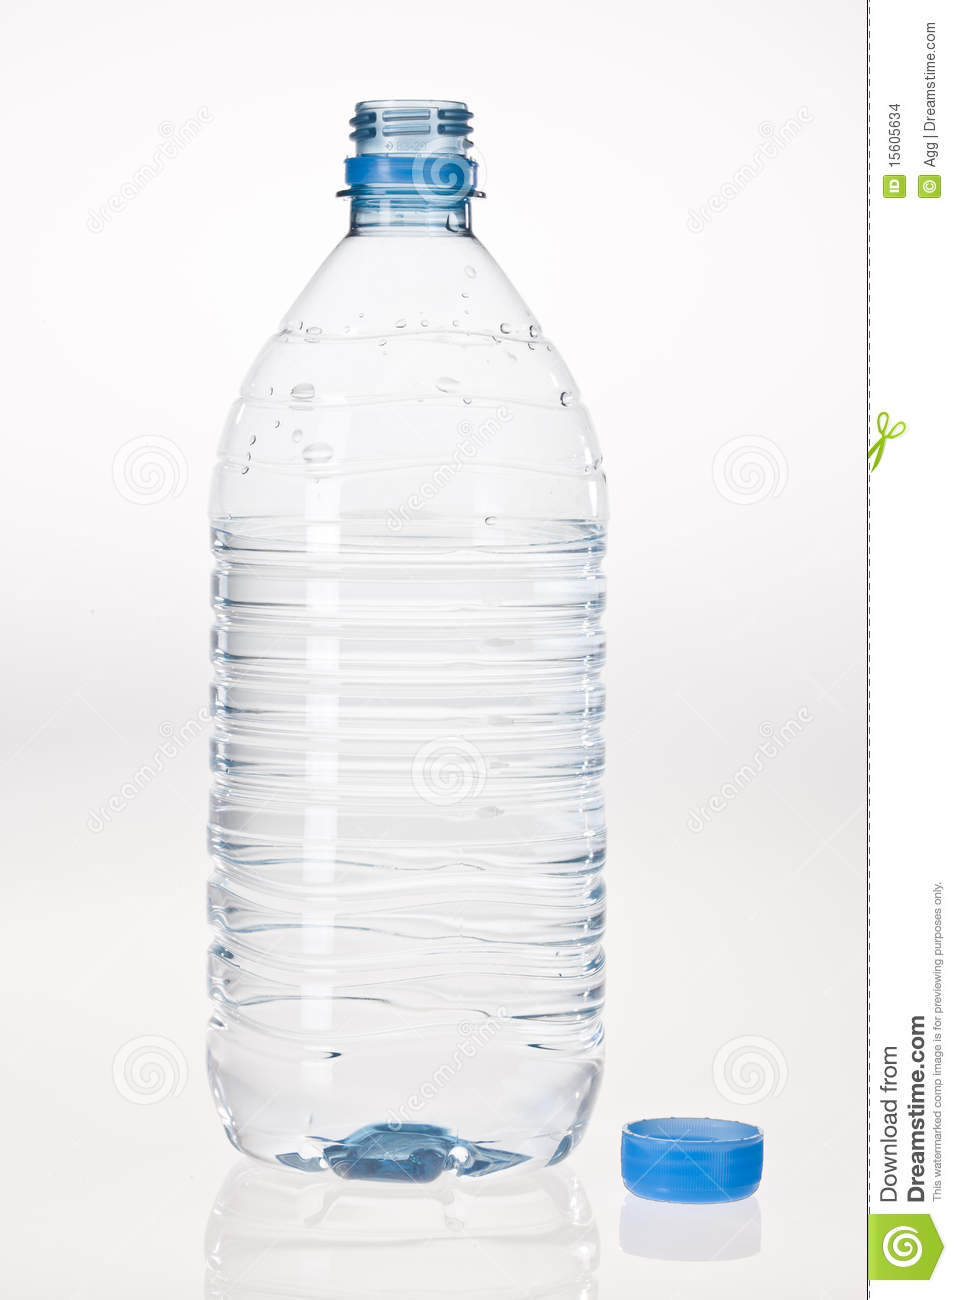 Bottle Of Water Stock Images - Image: 15605634